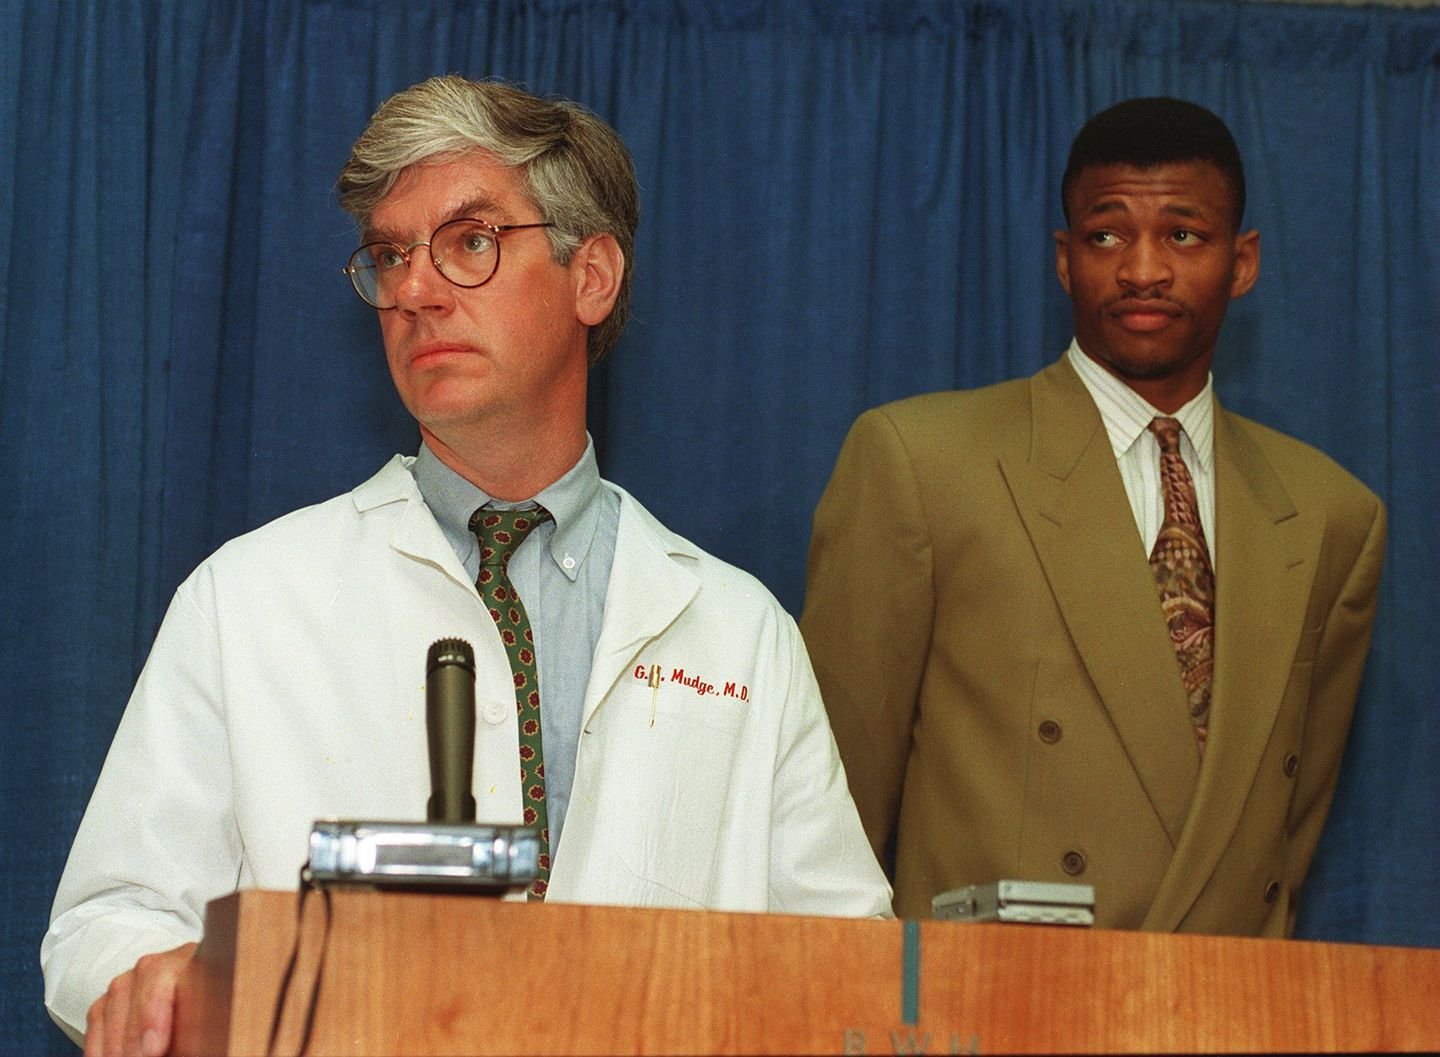 In 1993, Dr. Gilbert Mudge and Celtics player Reggie Lewis held a news conference to discuss his diagnosis.